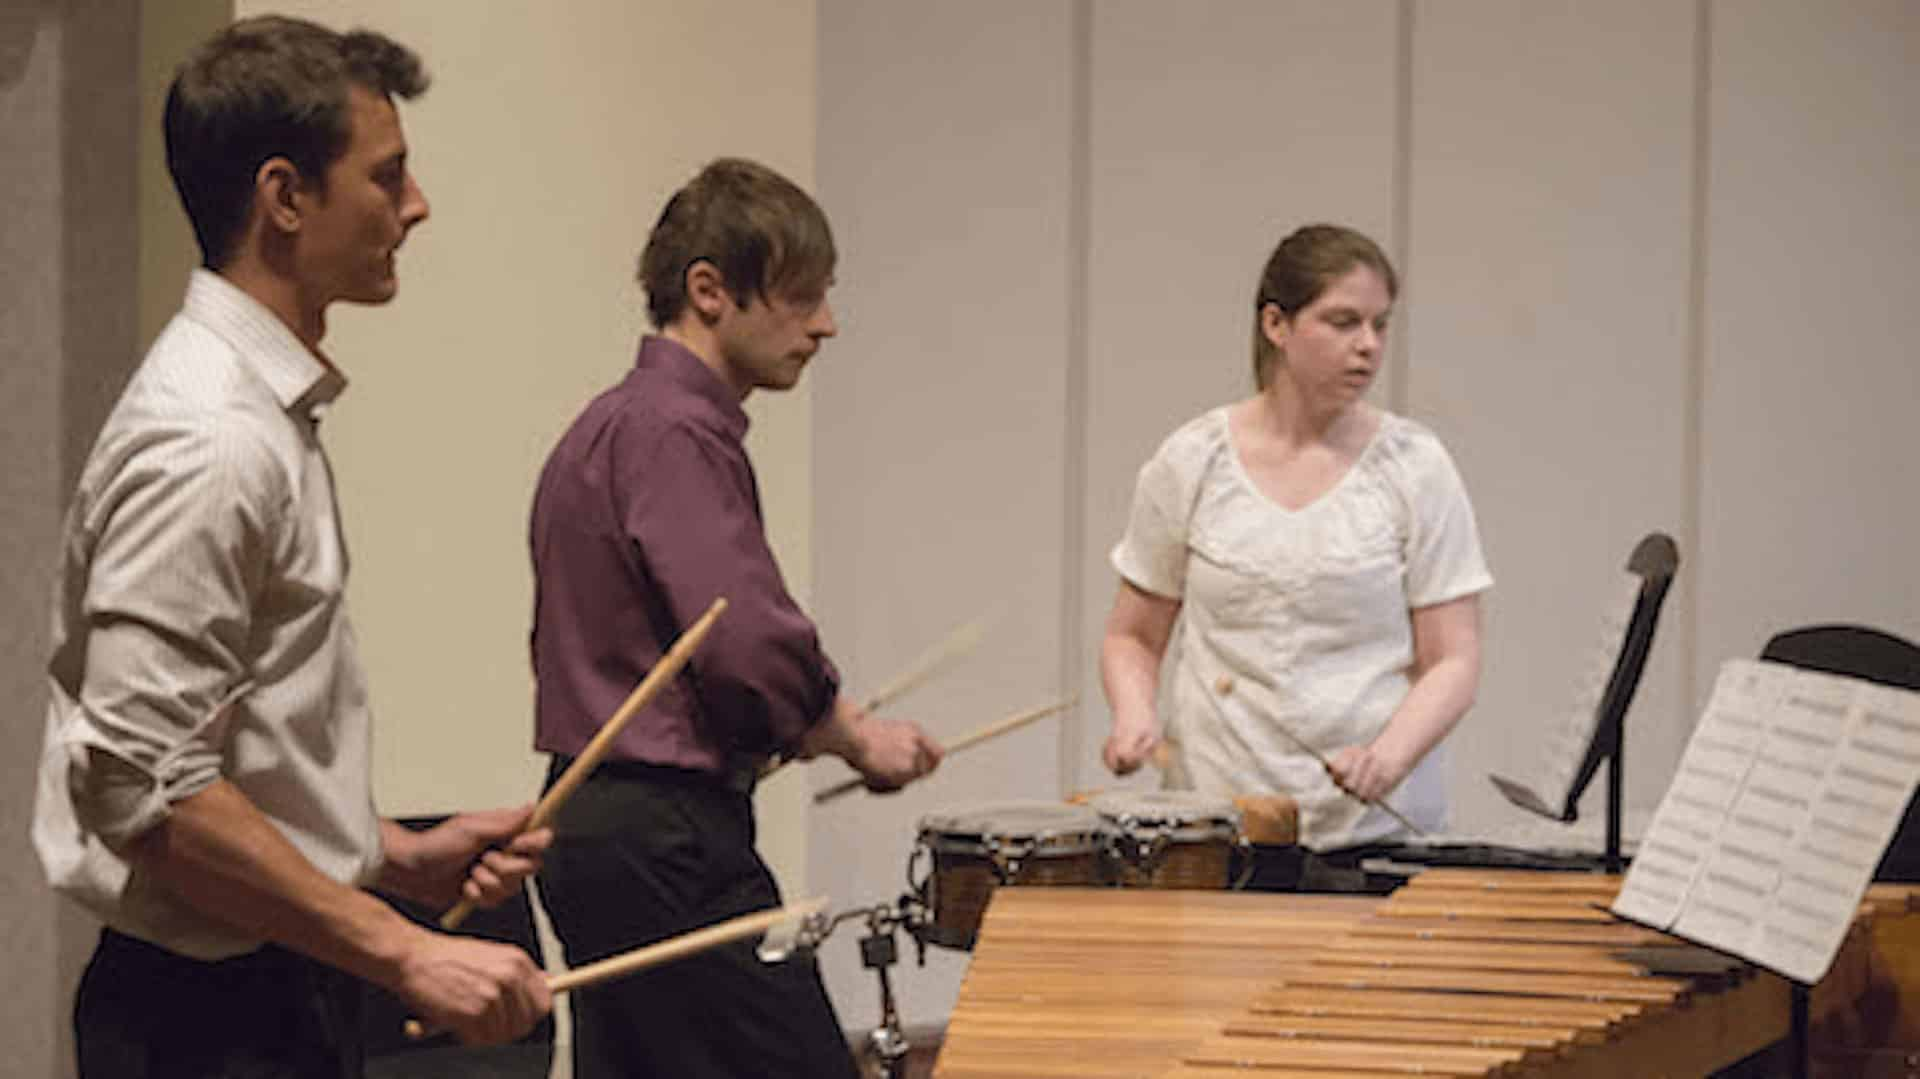 Students playing percussion